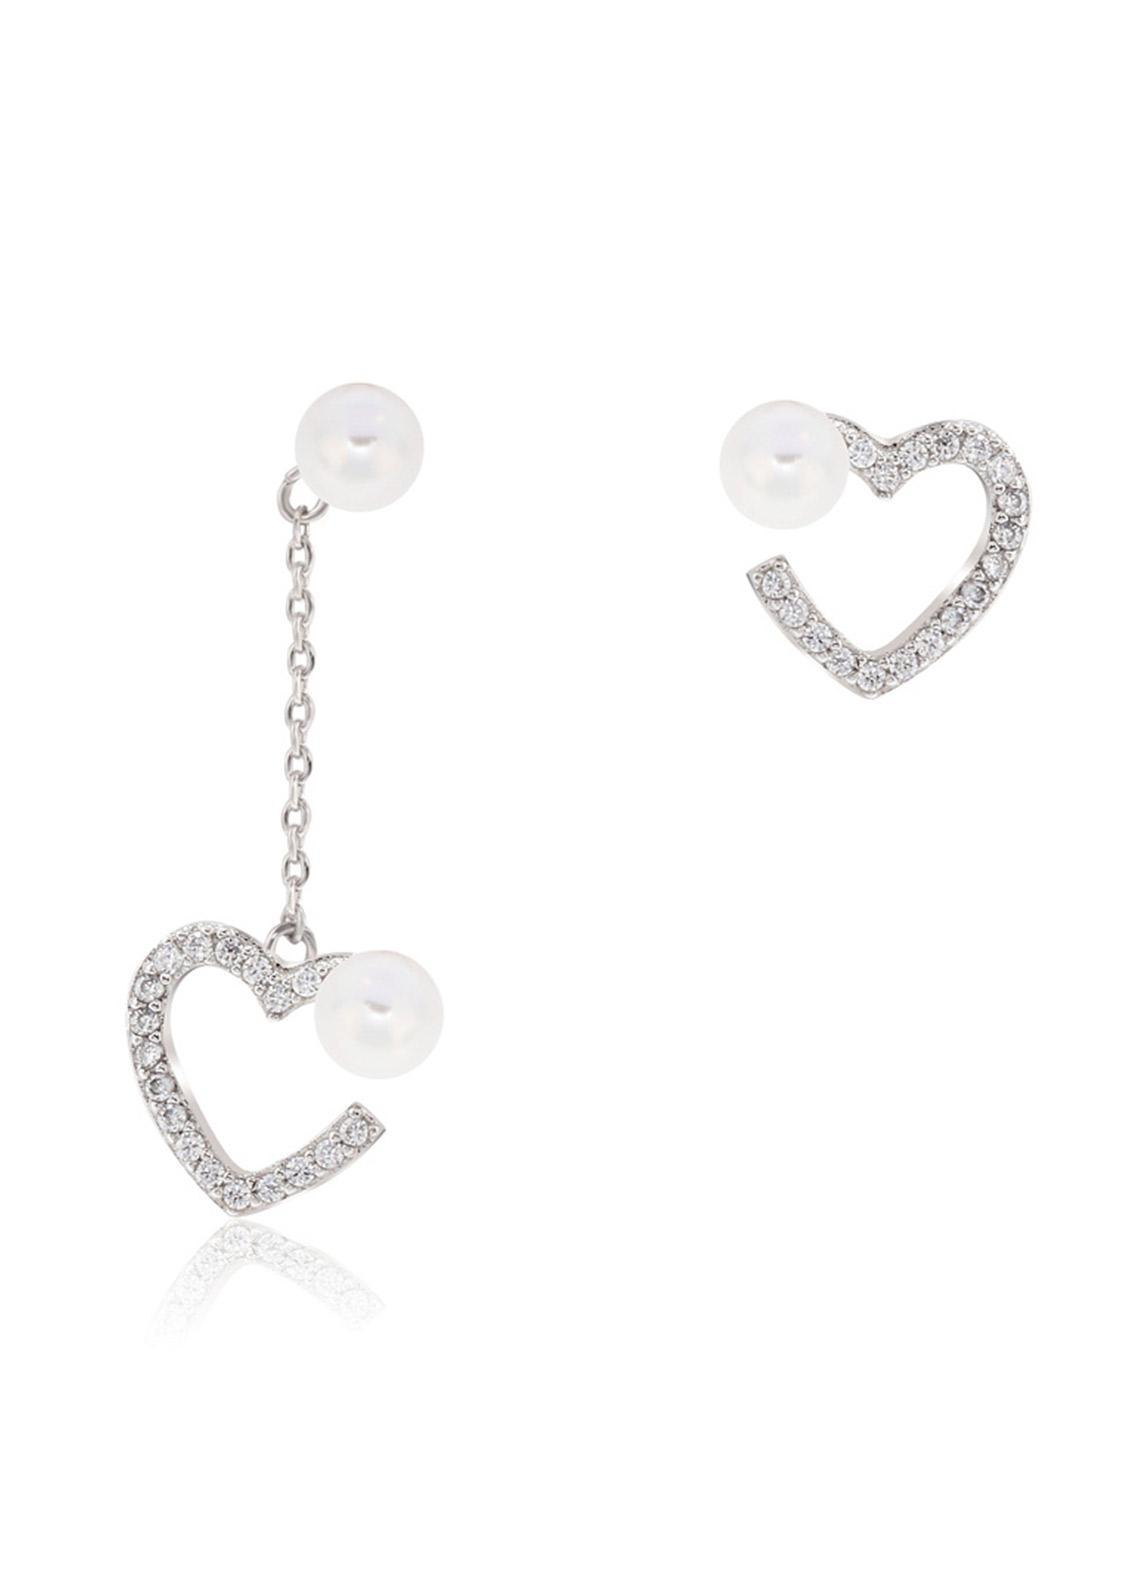 Anna Grace London by Silk Avenue Silver Crystal Sparkling Pearl Heart Earring AGE0026 - Ladies Jewellery